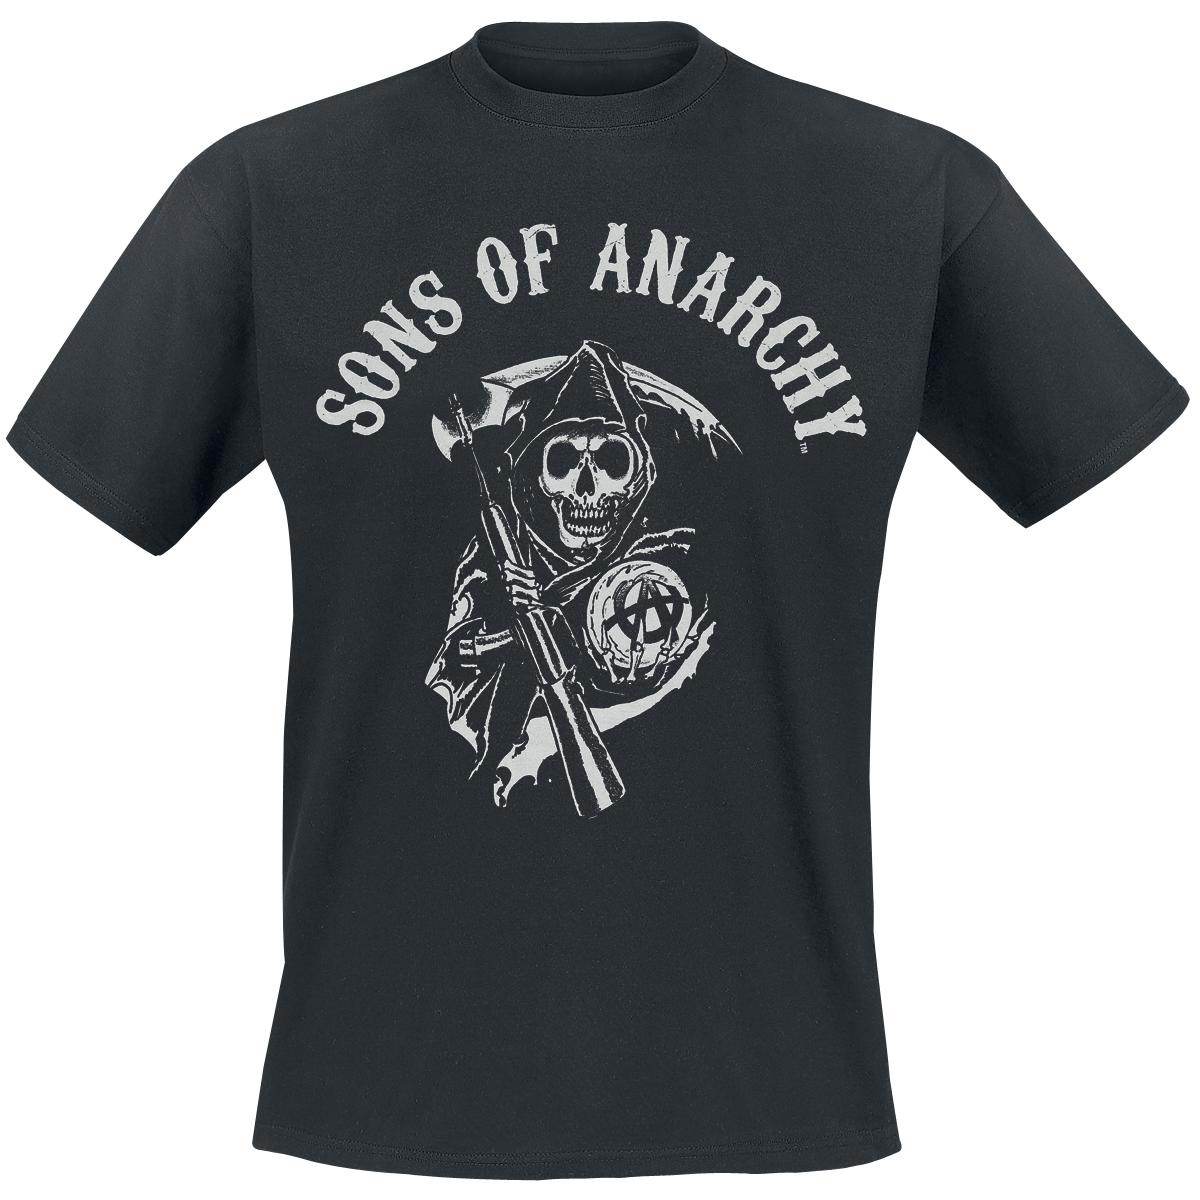 09-sons-of-anarchy-t-shirt